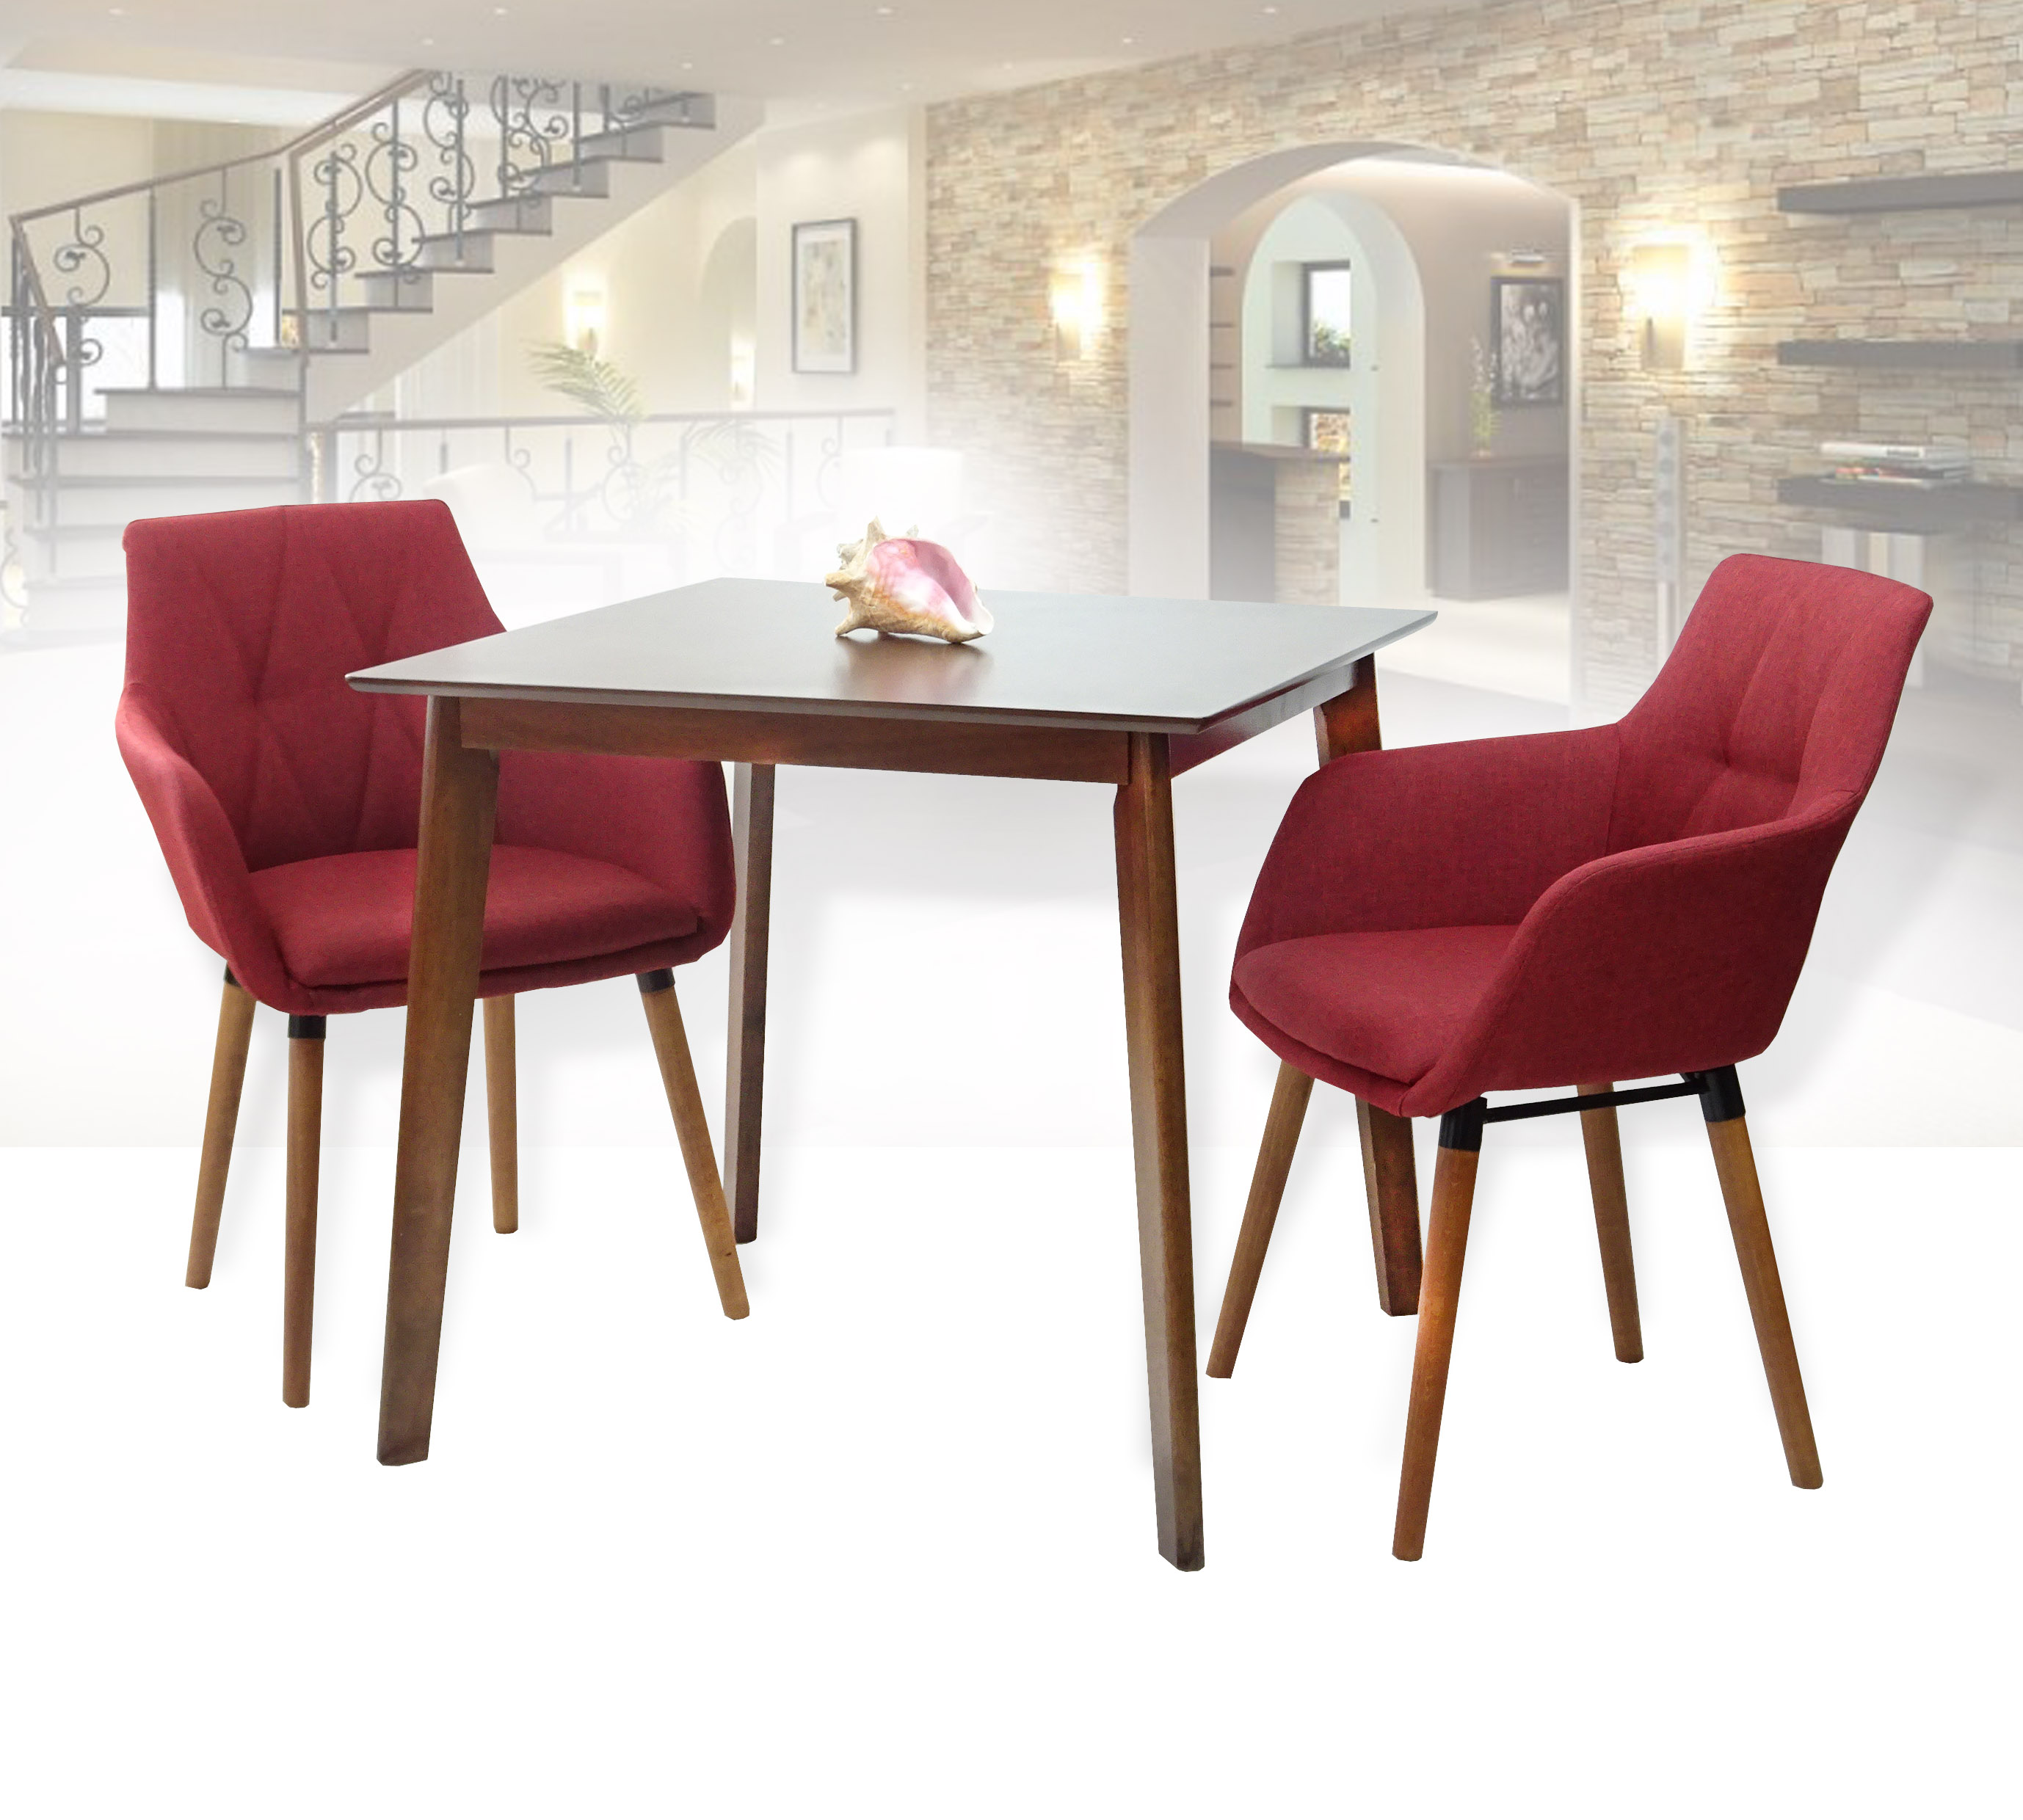 Buy Dining Kitchen Modern Alba Armchairs Set Of 2 Wood